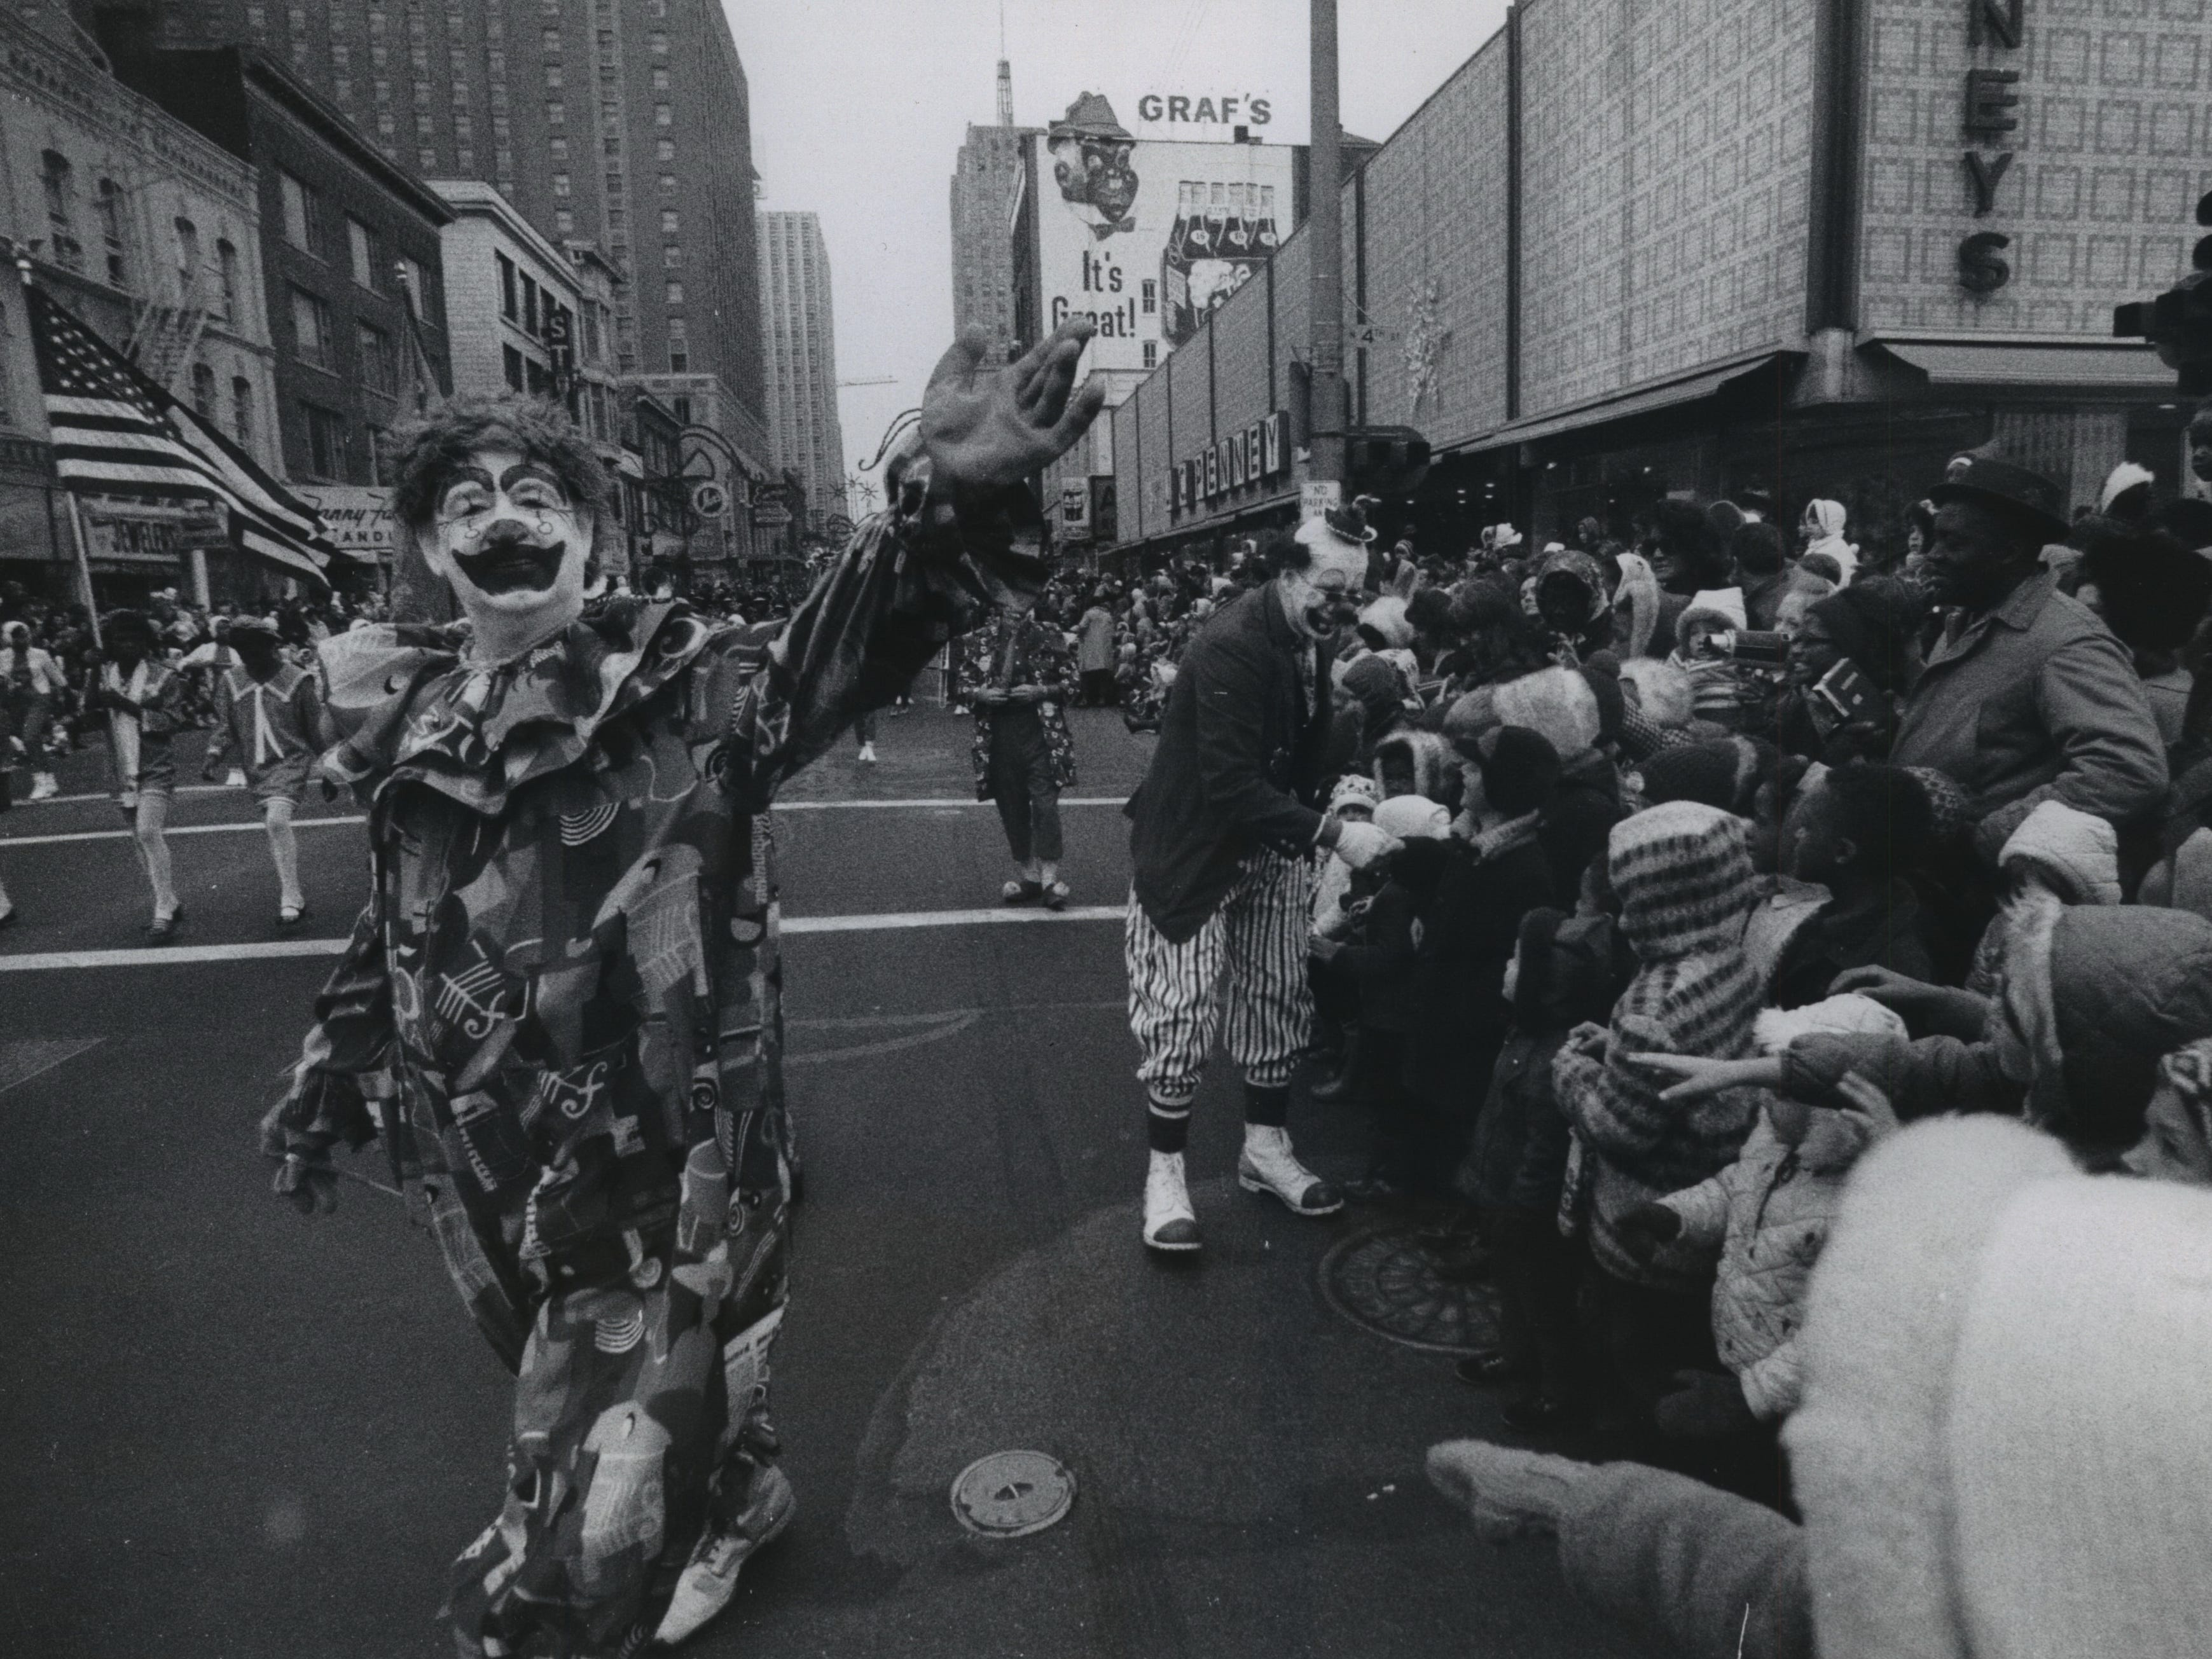 Clowns greet spectators along the route of Milwaukee's annual Christmas parade on Wisconsin Avenue at N. Fifth St. on Nov. 23, 1968. This photo was published on the front page of the Nov. 24, 1968, Milwaukee Journal.